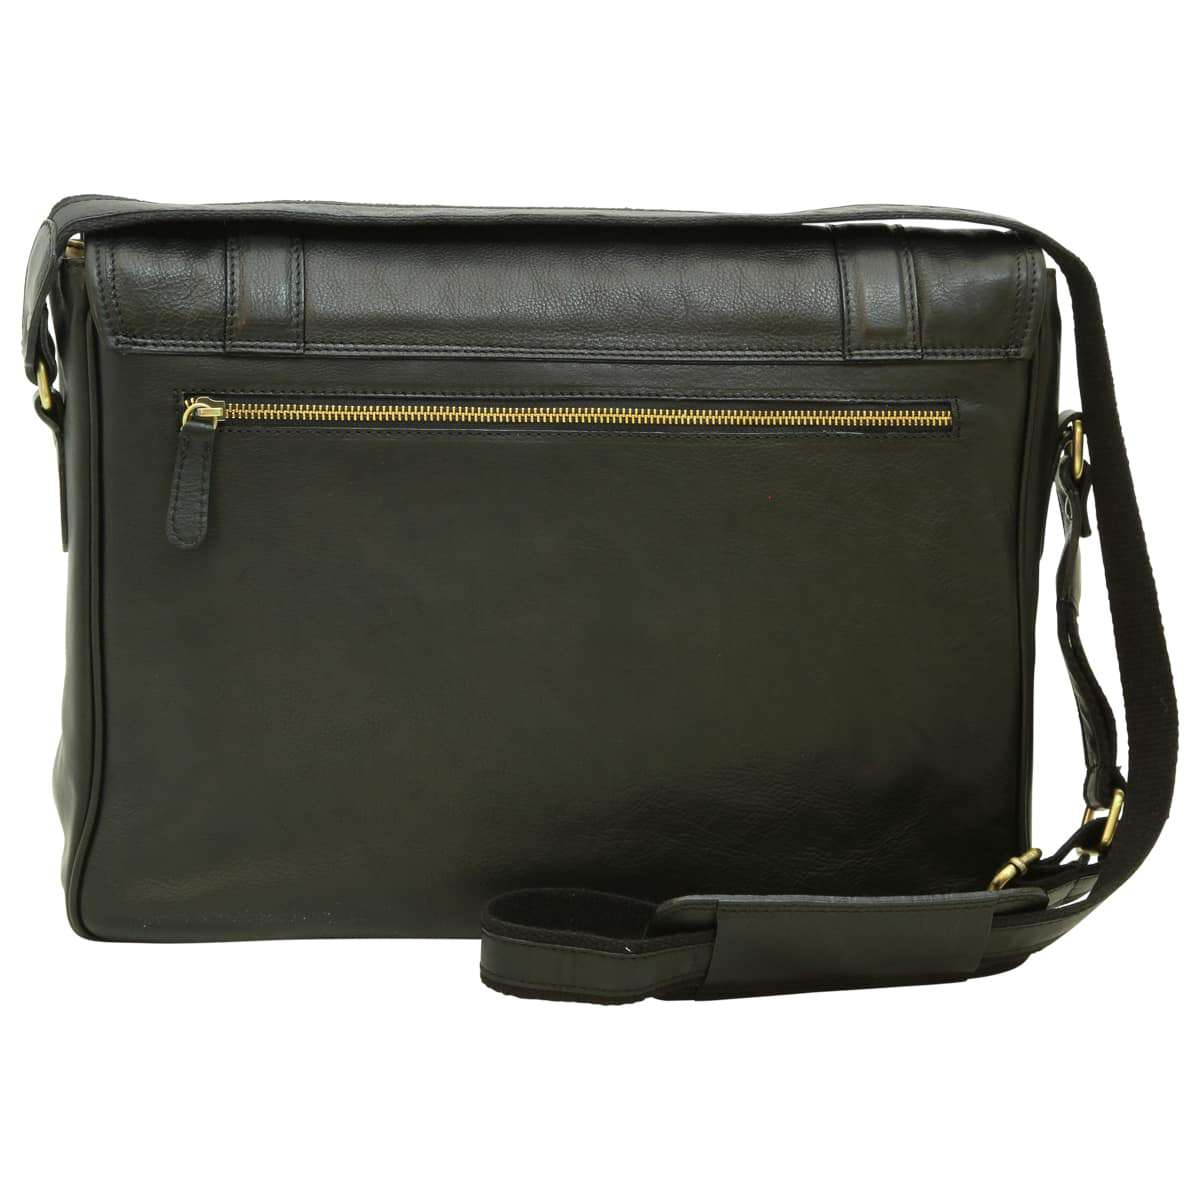 Soft Calfskin Leather Messenger Bag - Black | 030491NE E | Old Angler Firenze